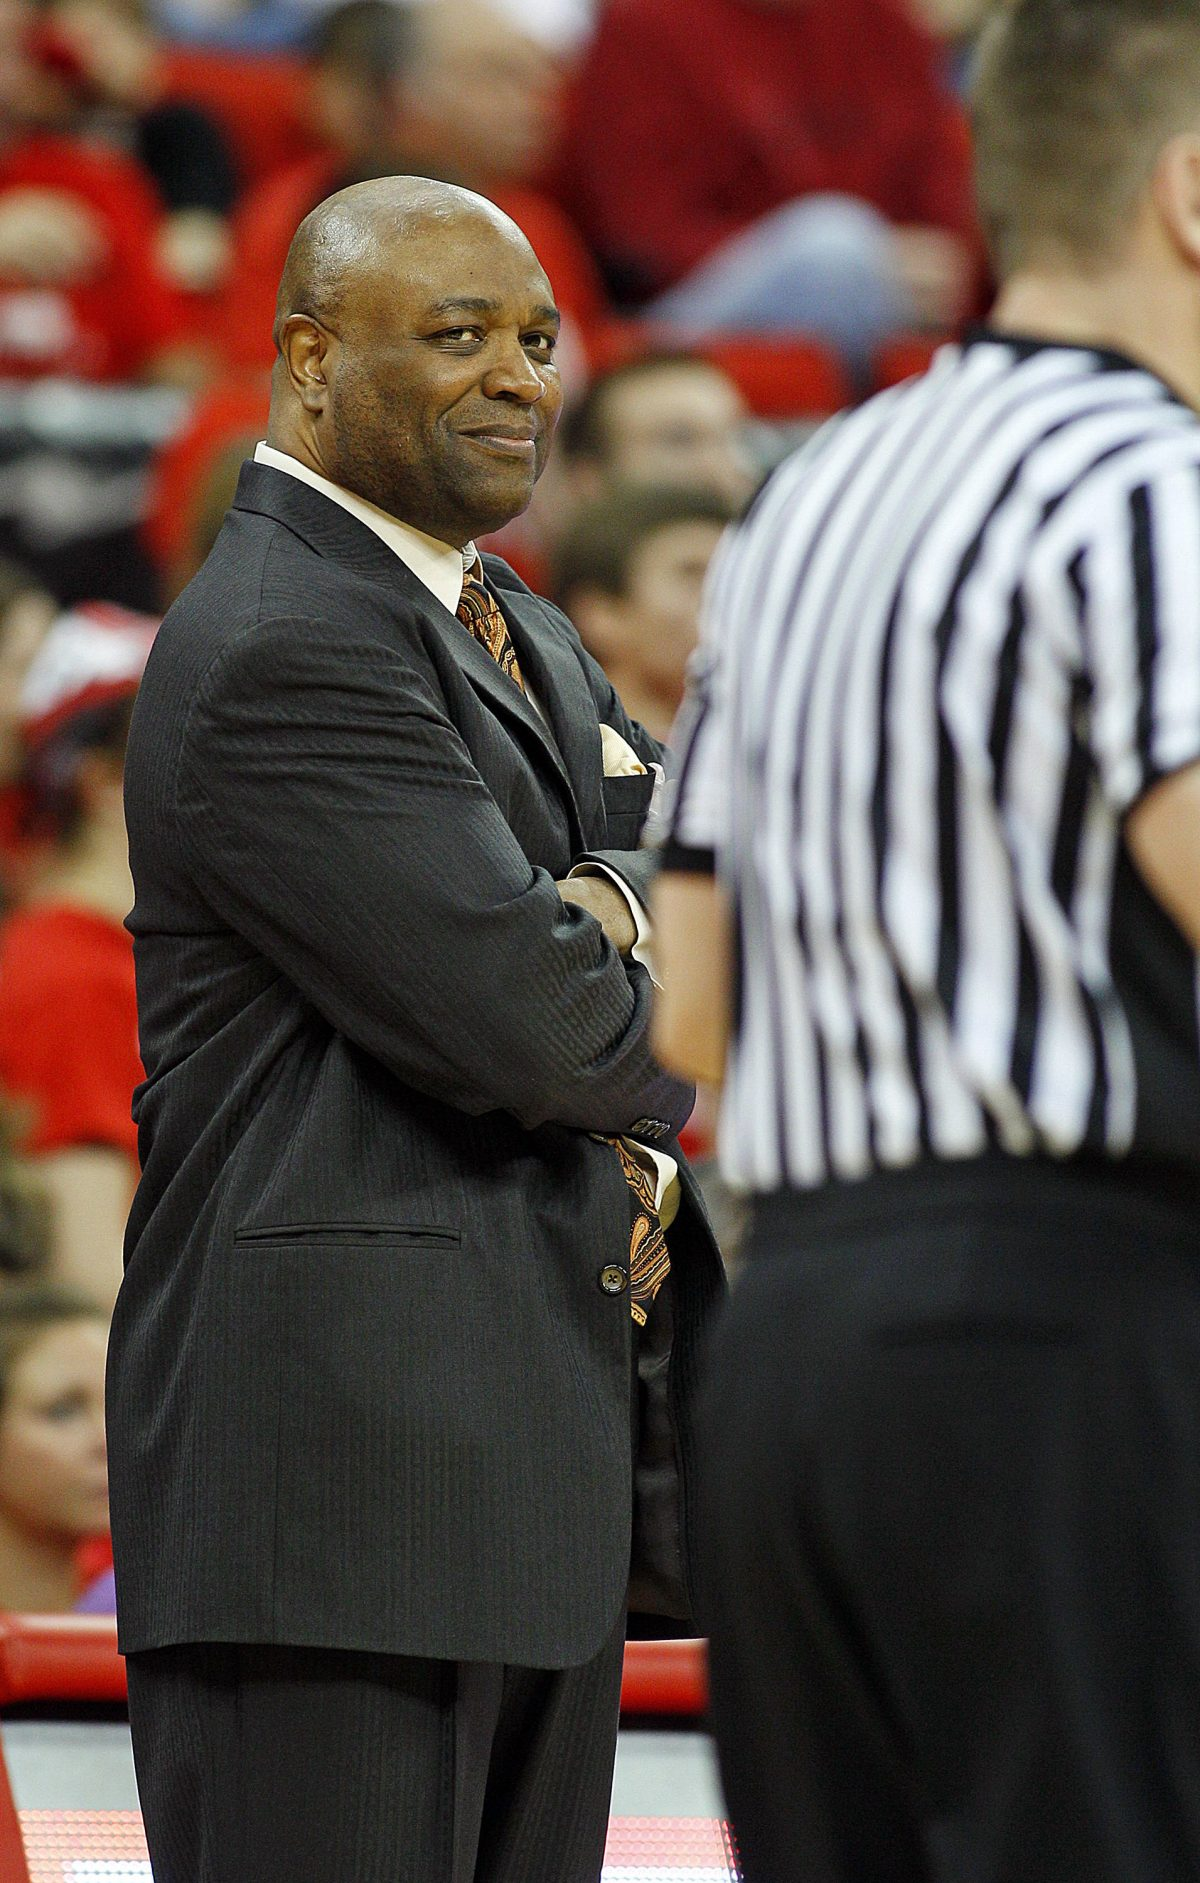 Florida State head coach Leonard Hamilton reacts to a call by the officials during the first half of an NCAA college basketball game against North Carolina State in Raleigh, N.C., Saturday, Feb. 18, 2012. Florida State won 76-62. (AP Photo/Karl B DeBlaker)